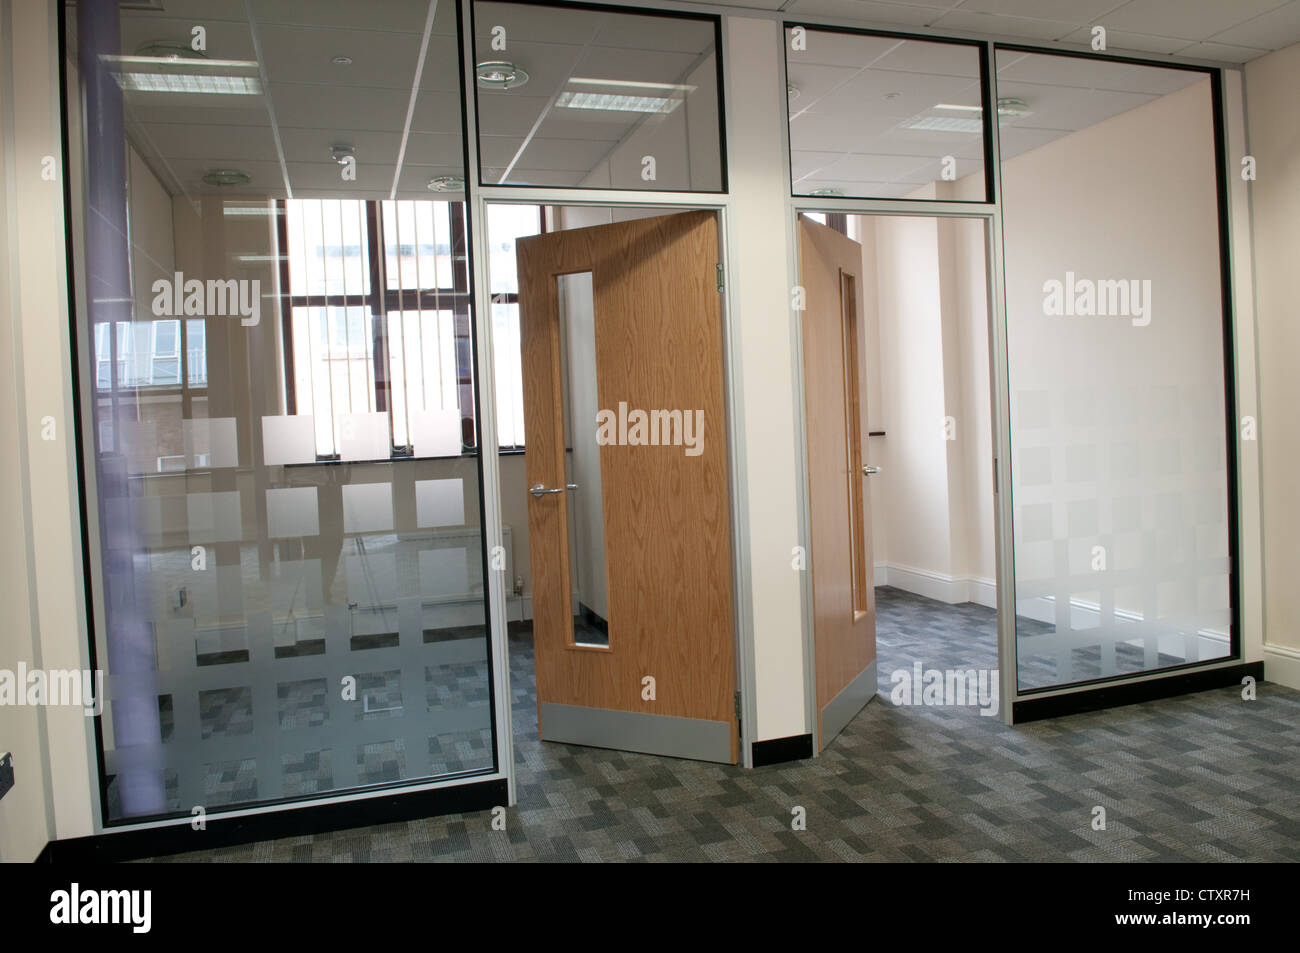 Open Doors Leading To Two Empty Offices Behind Frosted